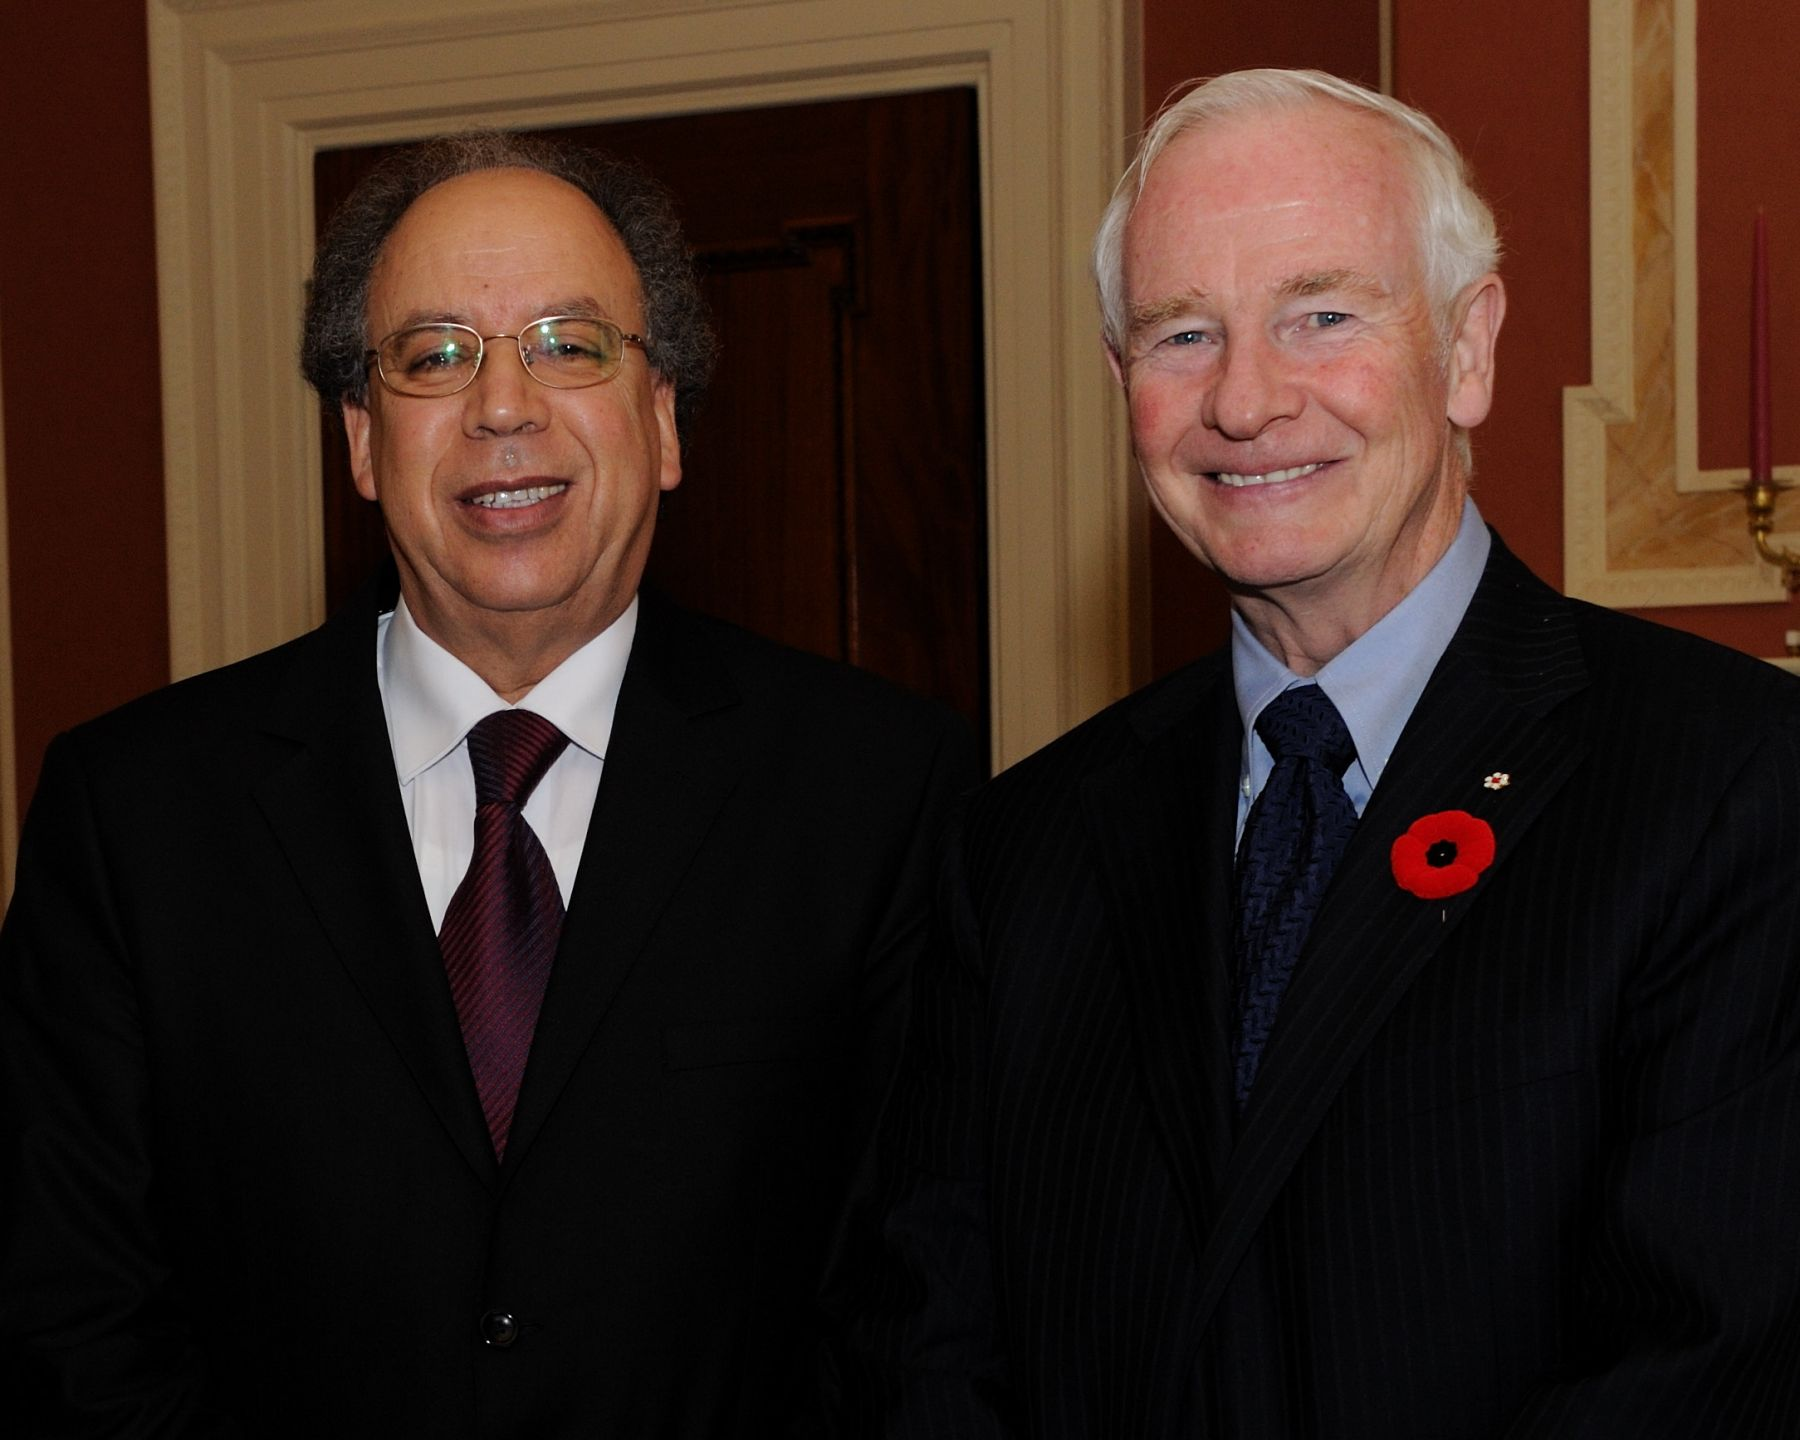 His Excellency the Right Honourable David Johnston, Governor General of Canada, received the credentials of His Excellency Dr. Abdulrahman Mohamed Ali Abututa, Ambassador of the Great Socialist People's Libyan Arab Jamahiriya.